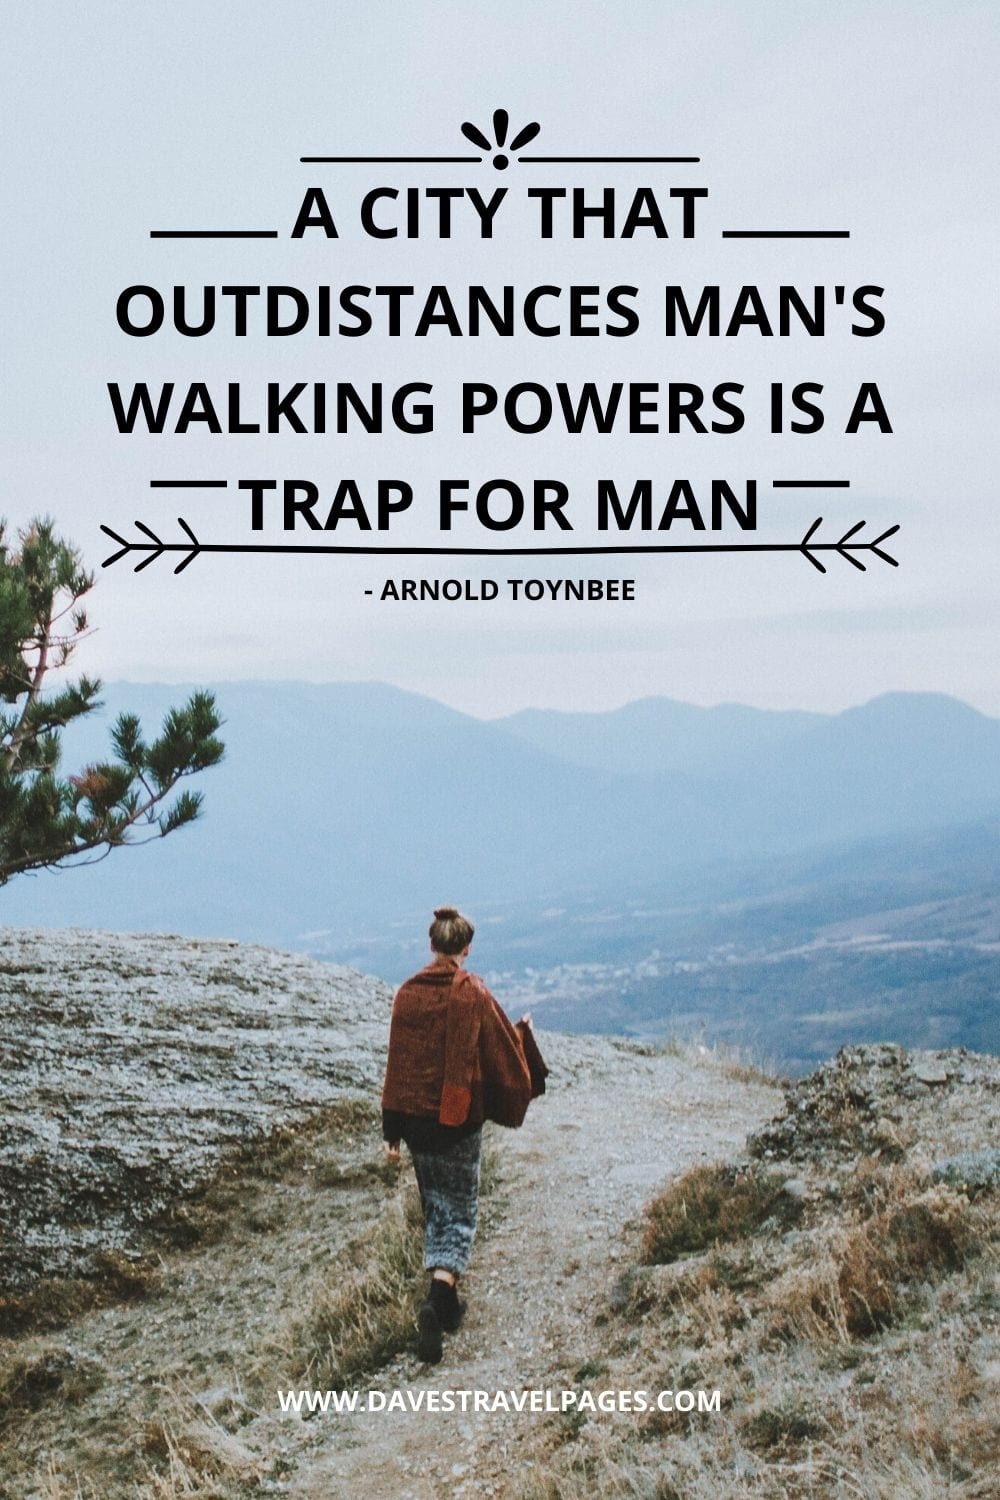 City Walking Quotes: A city that outdistances man's walking powers is a trap for man - Arnold Toynbee